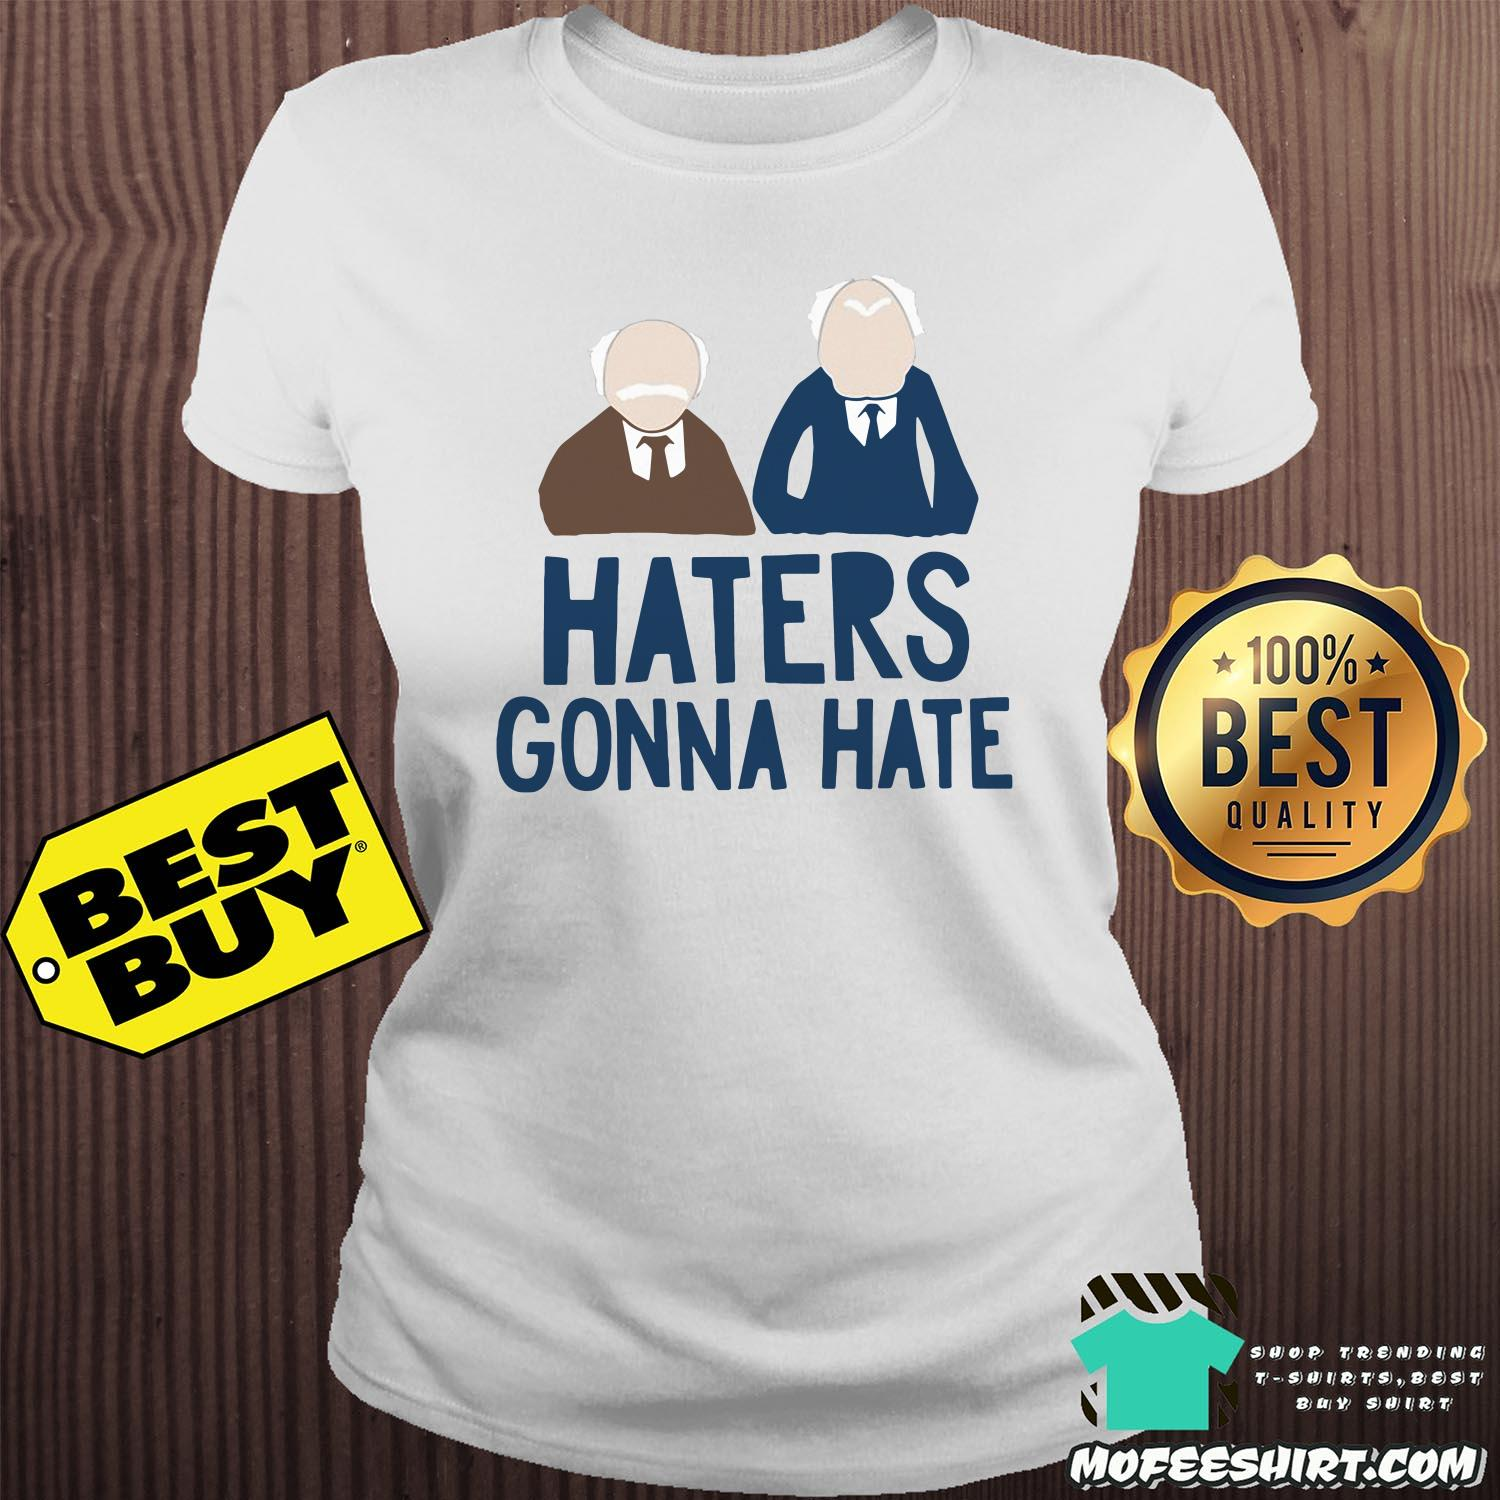 muppets haters gonna hate ladies tee - Muppets Haters Gonna Hate shirt